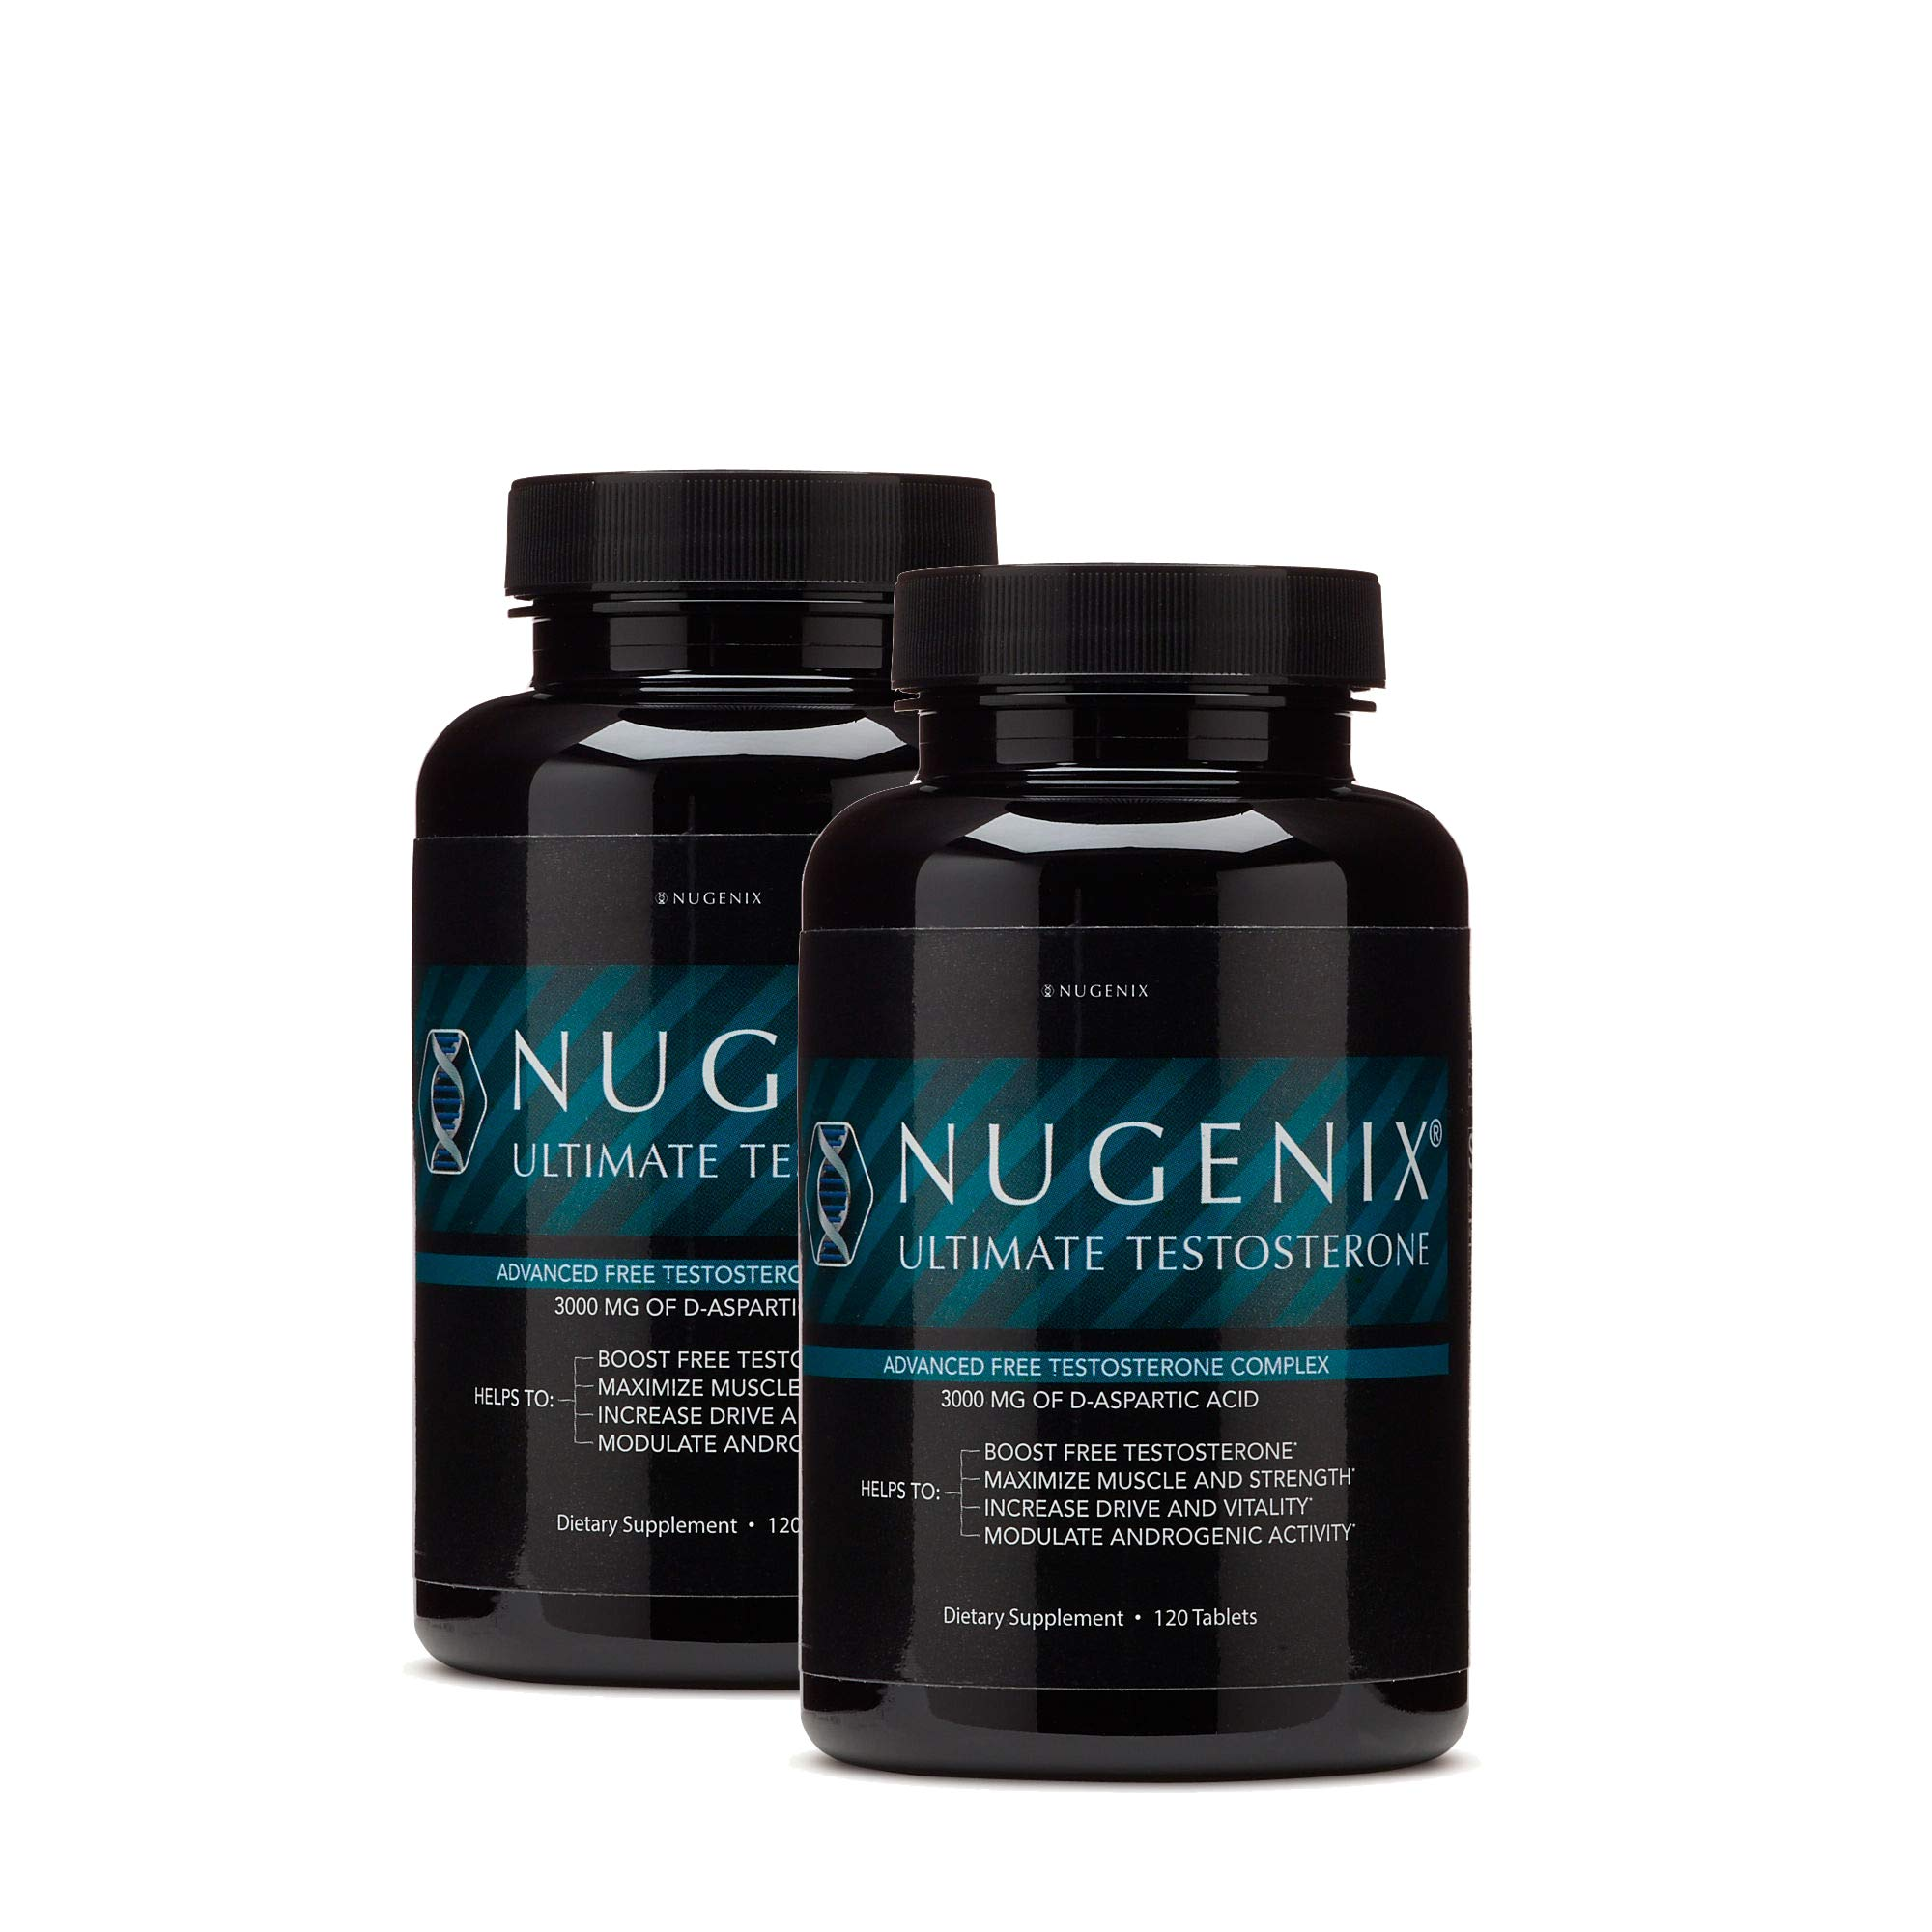 Nugenix Ultimate Testosterone - Twin Pack by Nugenix (Image #1)